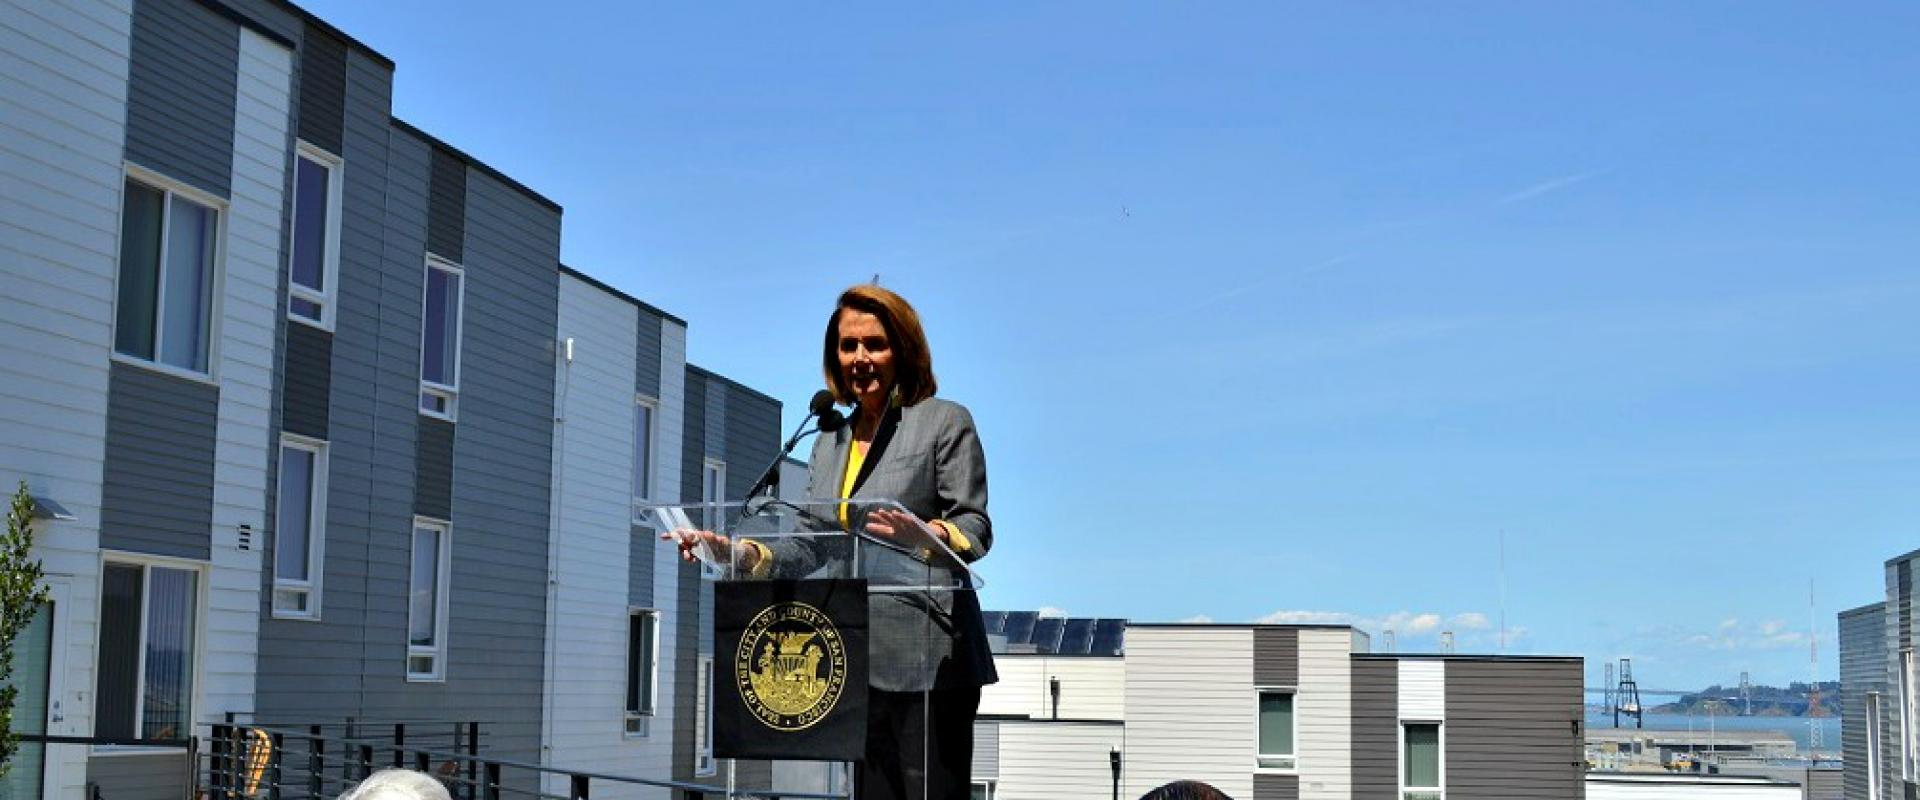 Congresswoman Pelosi joins Mayor Ed Lee, Board of Supervisors President London Breed, Supervisor Malia Cohen, and the Hunters View Community as they celebrate the ongoing revitalization of Hunters View, where all former residents who wished to stay are li